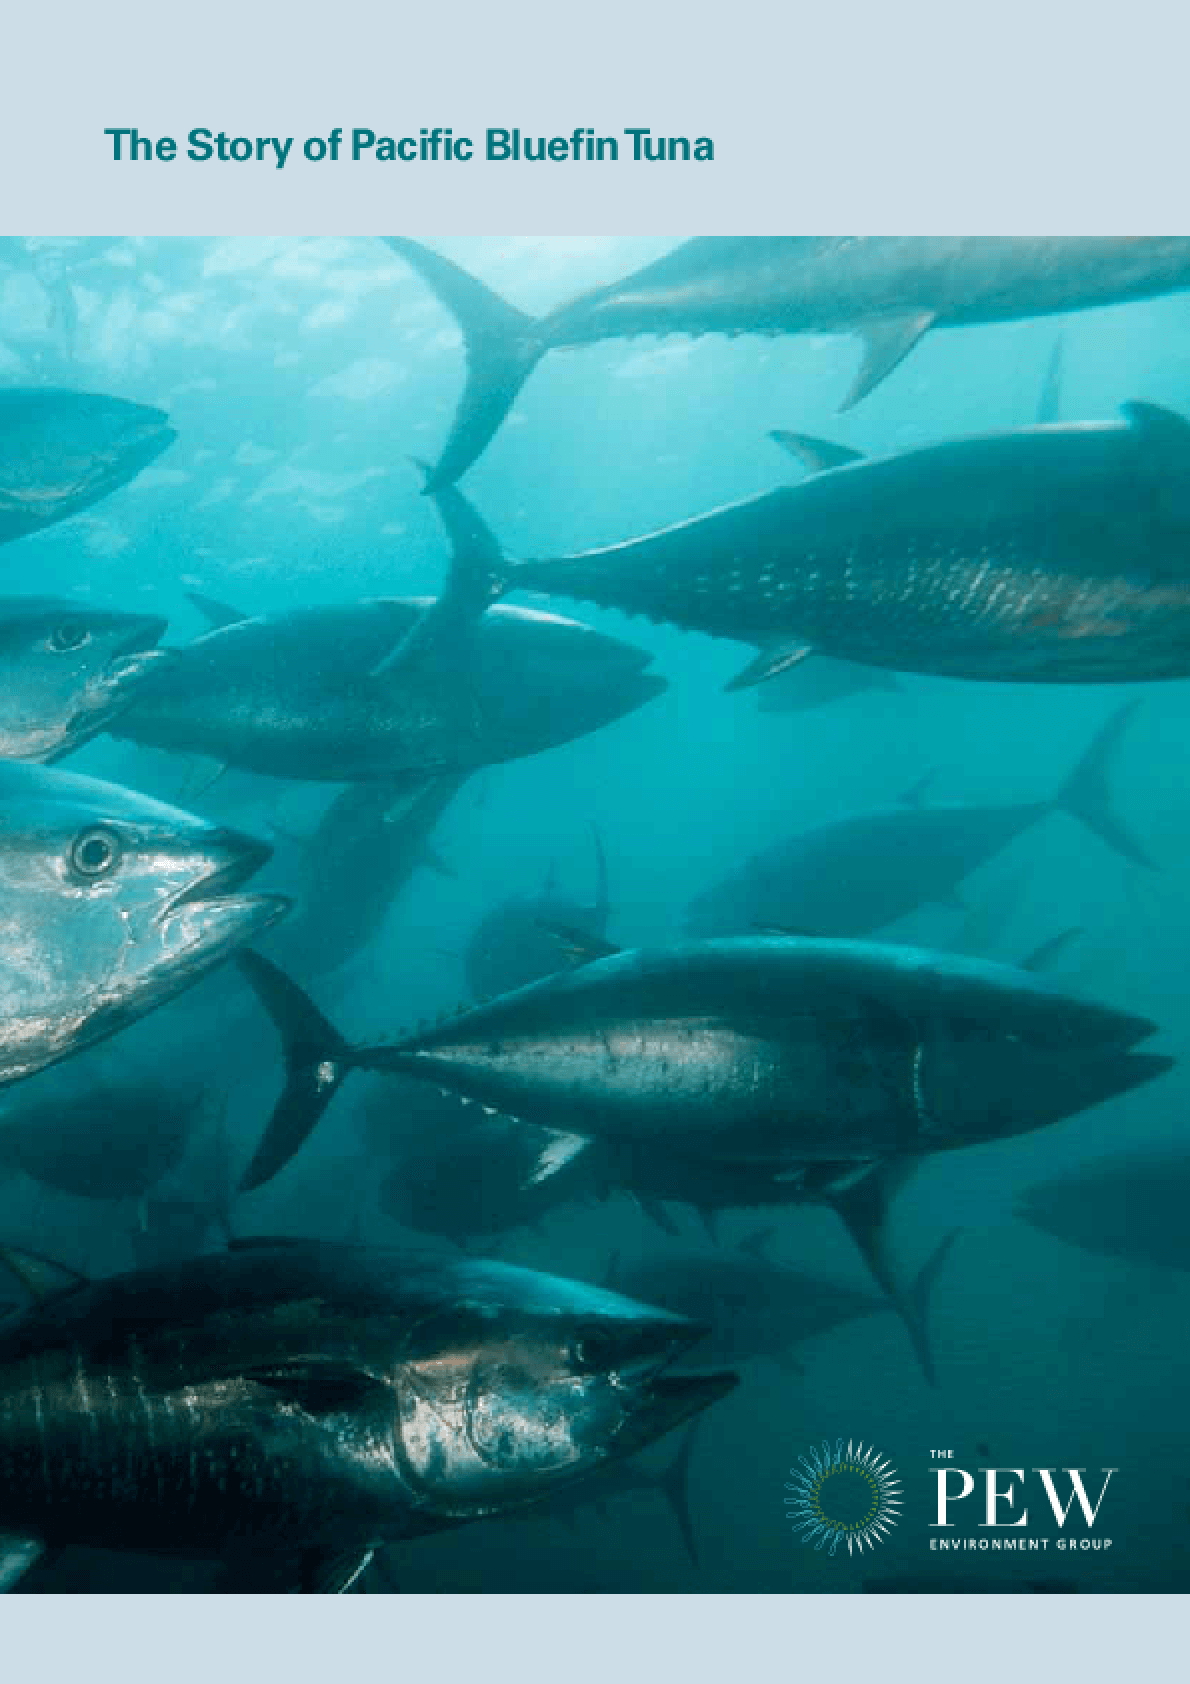 The Story of Pacific Bluefin Tuna